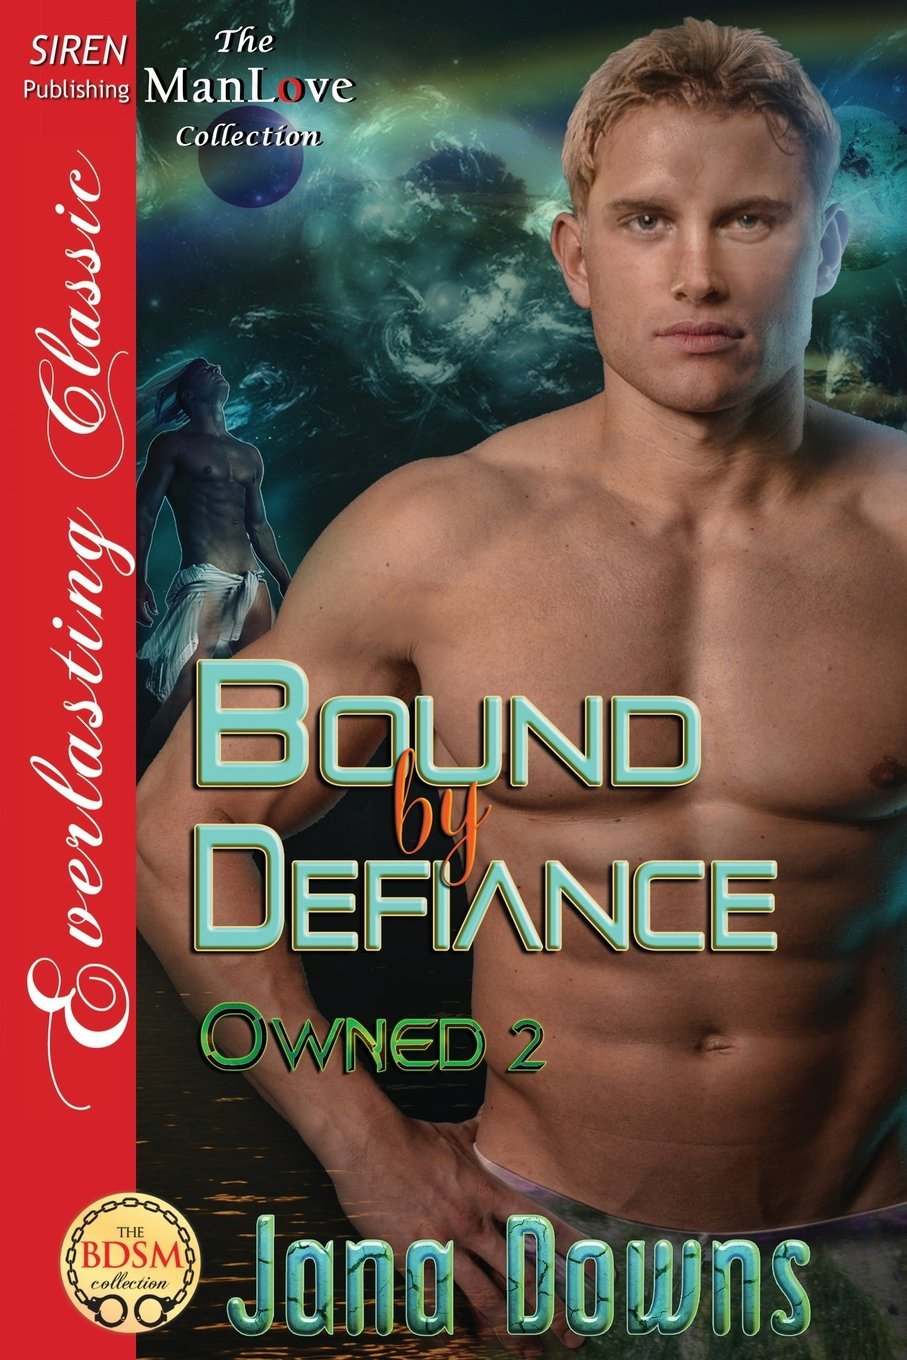 Bound by Defiance [Owned 2] (Siren Publishing Everlasting Classic Manlove) (Owned - Siren Publishing Everlasting Classic Manlove) ebook